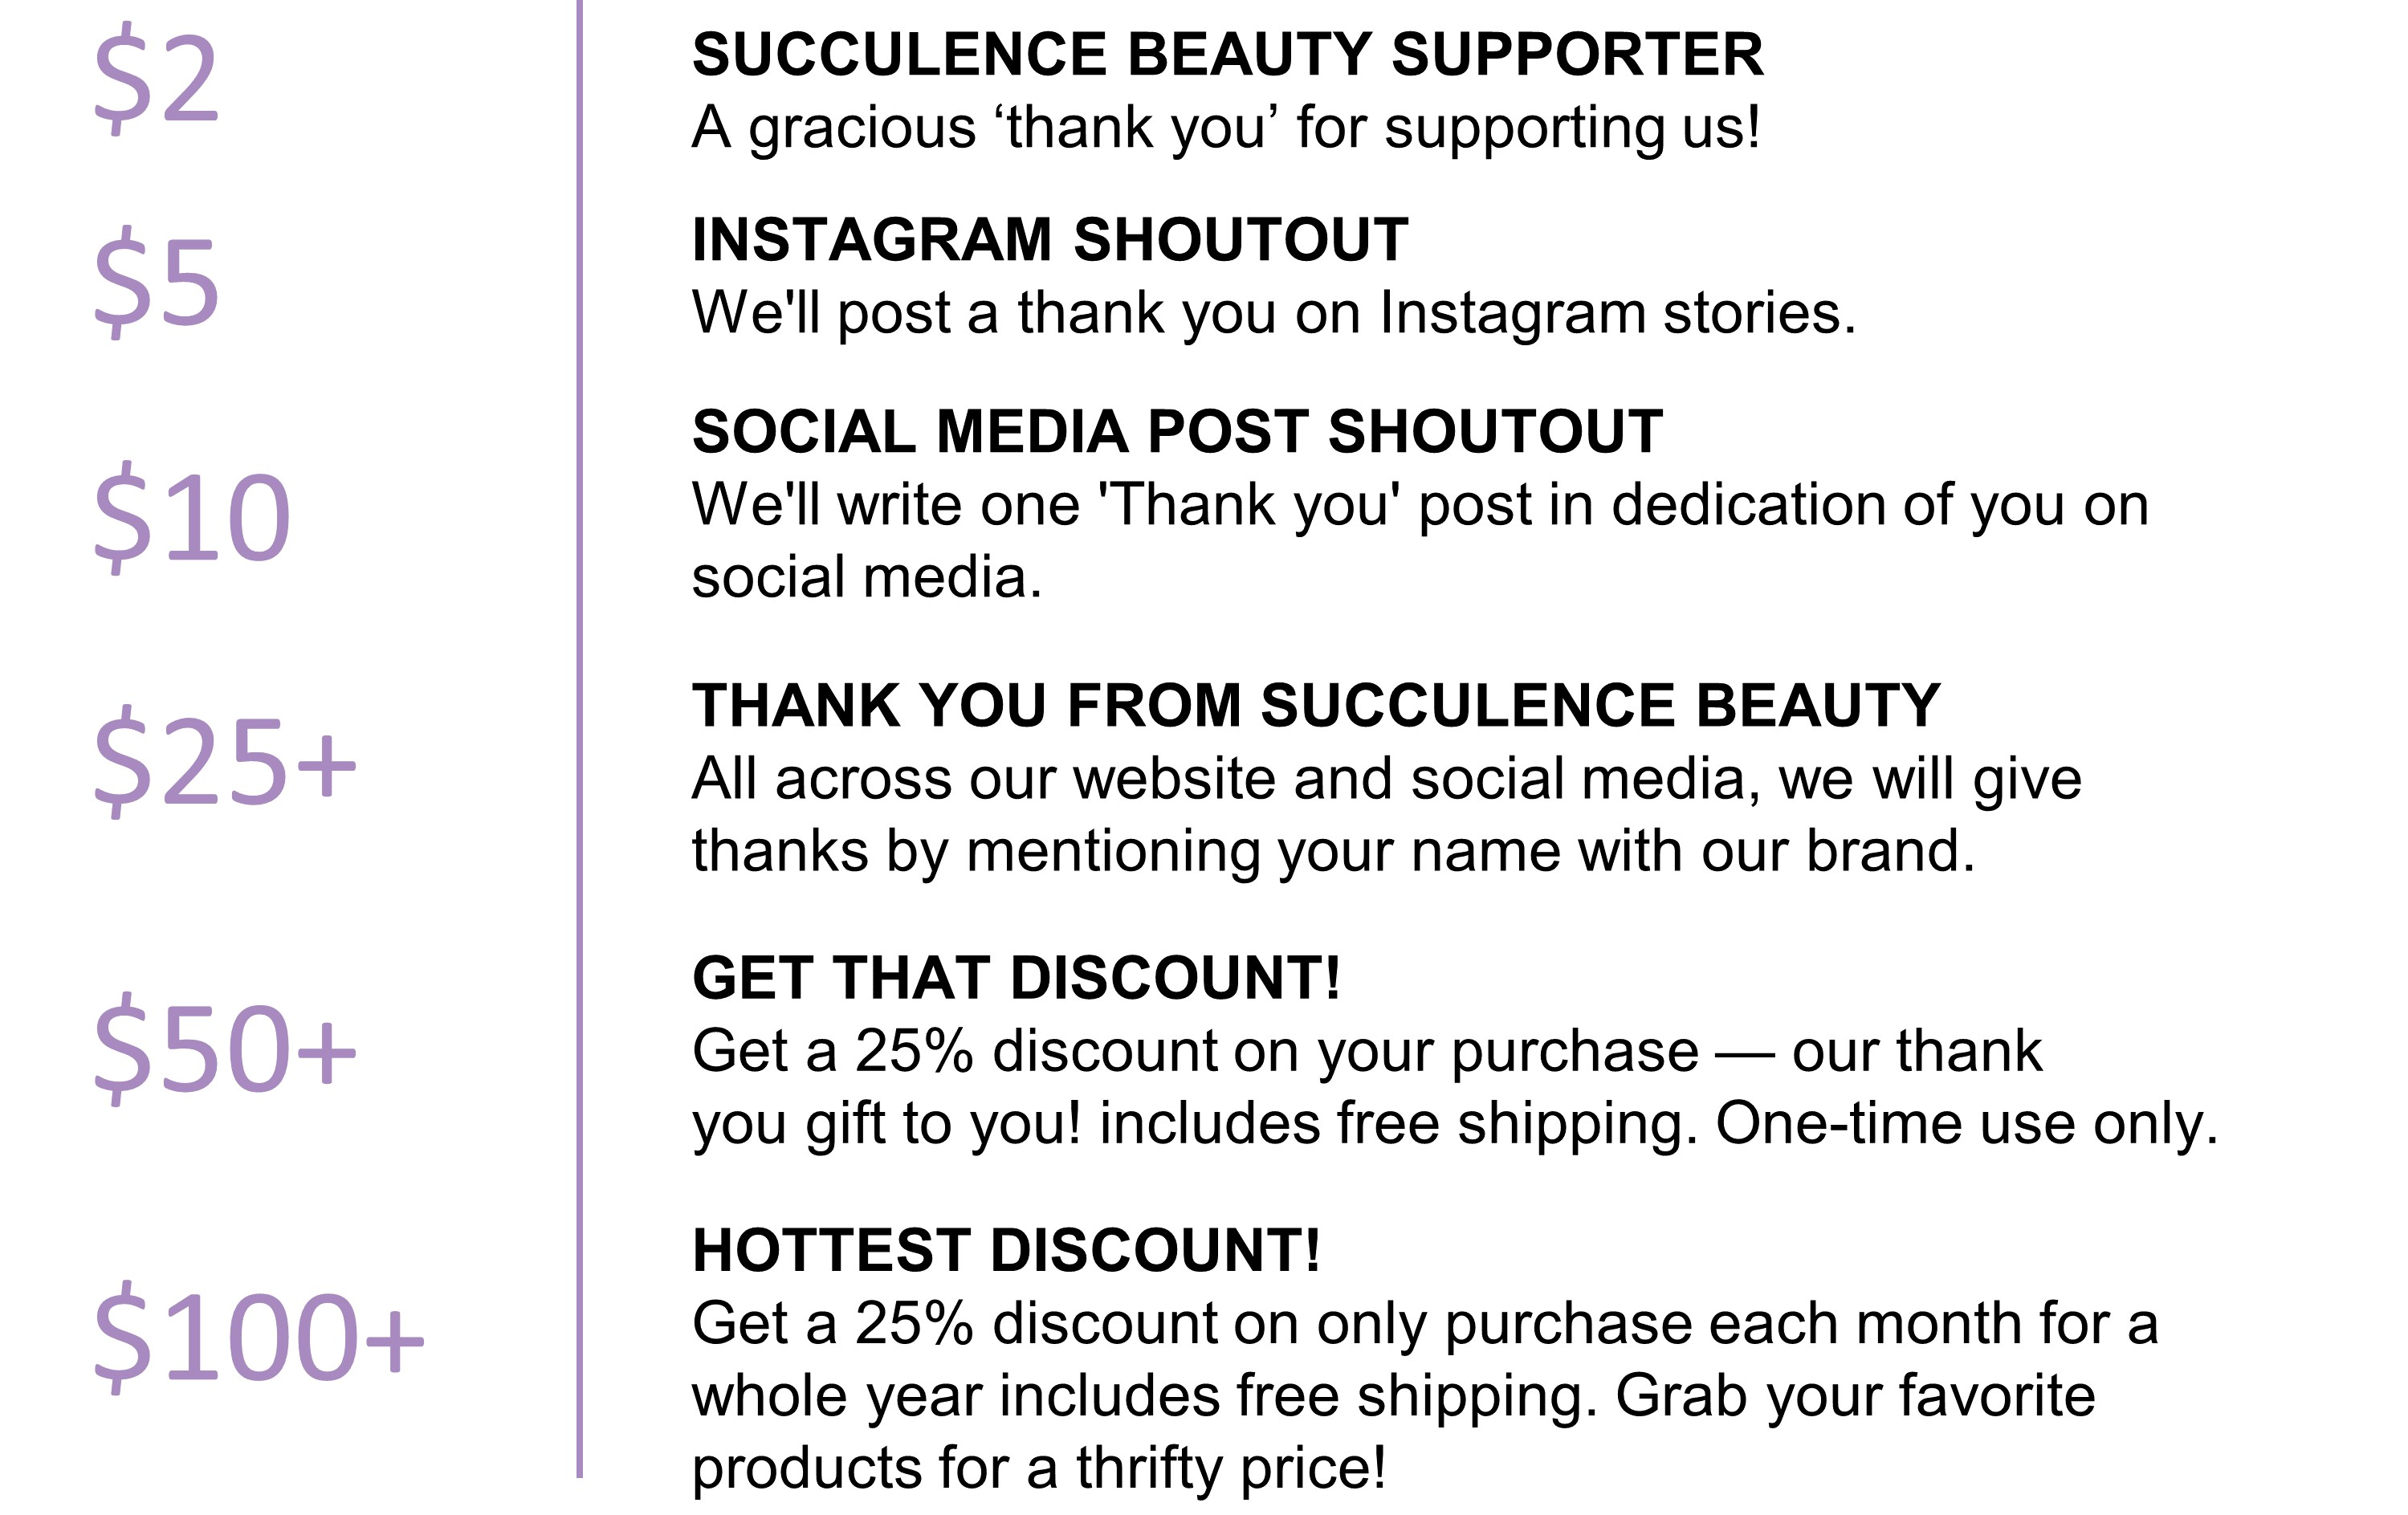 Succulence Beauty | Fundable - Crowdfunding for Small Businesses